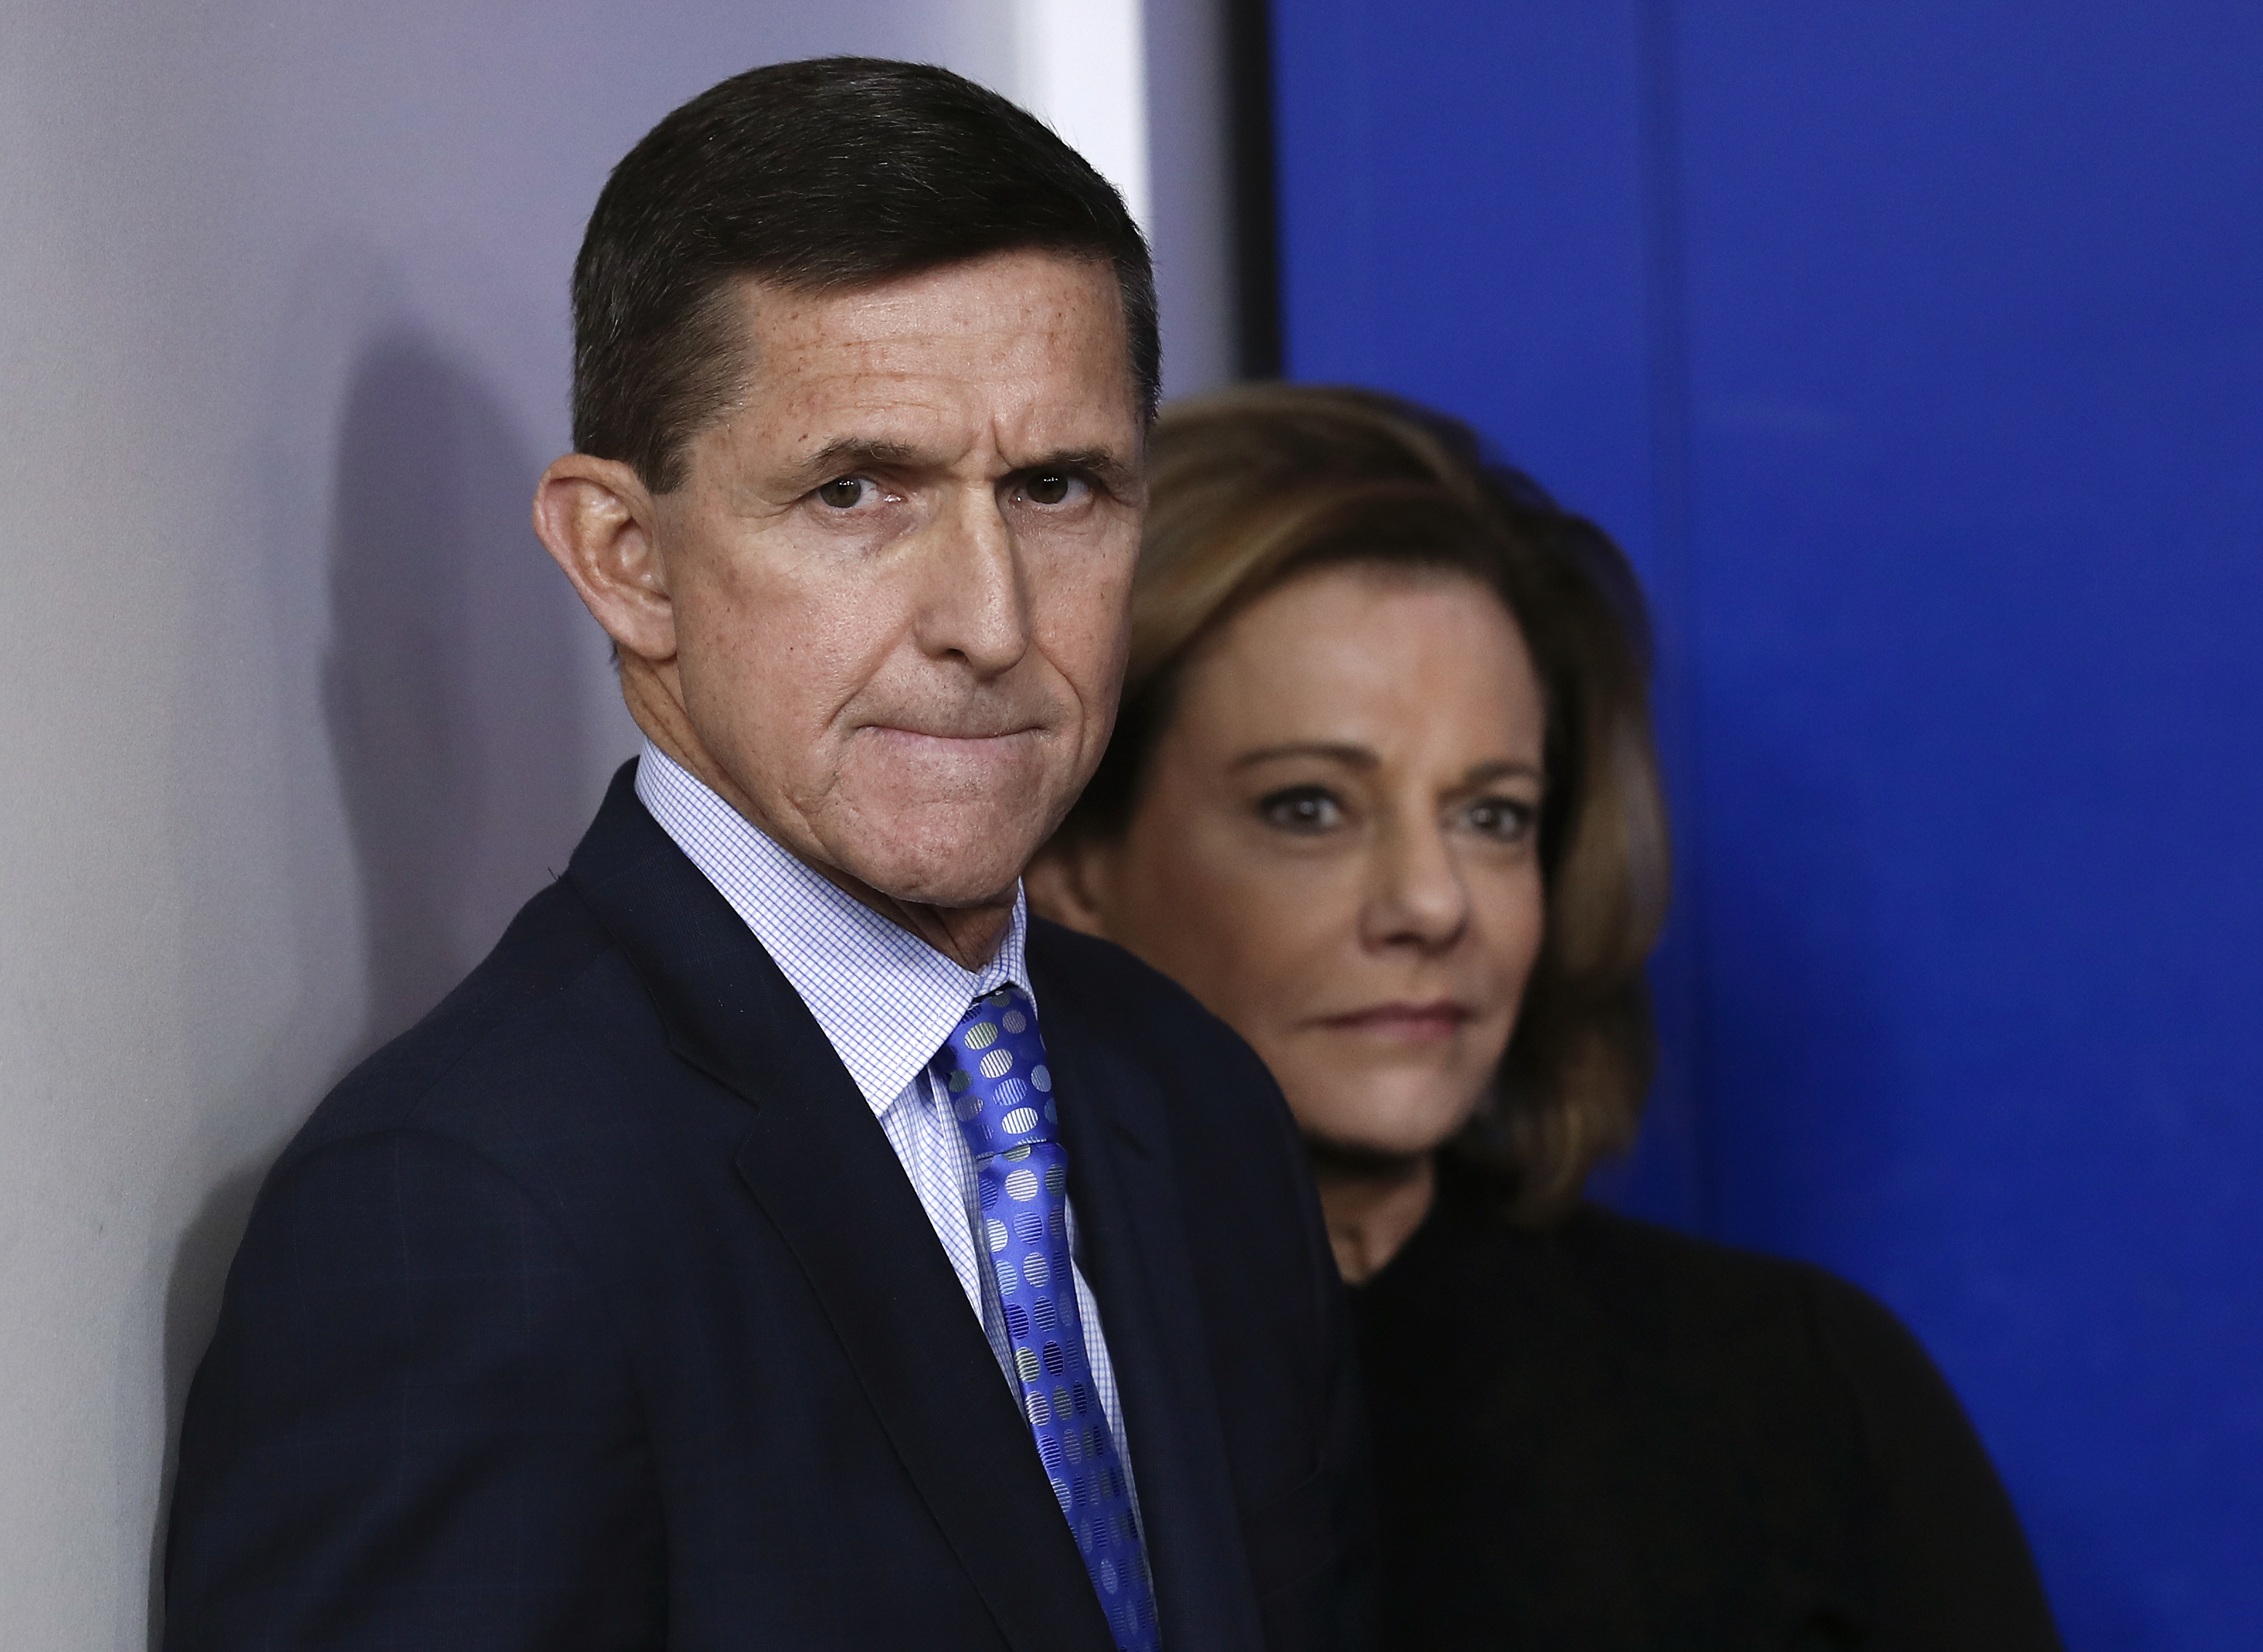 White House calls Pentagon decision to probe Flynn appropriate